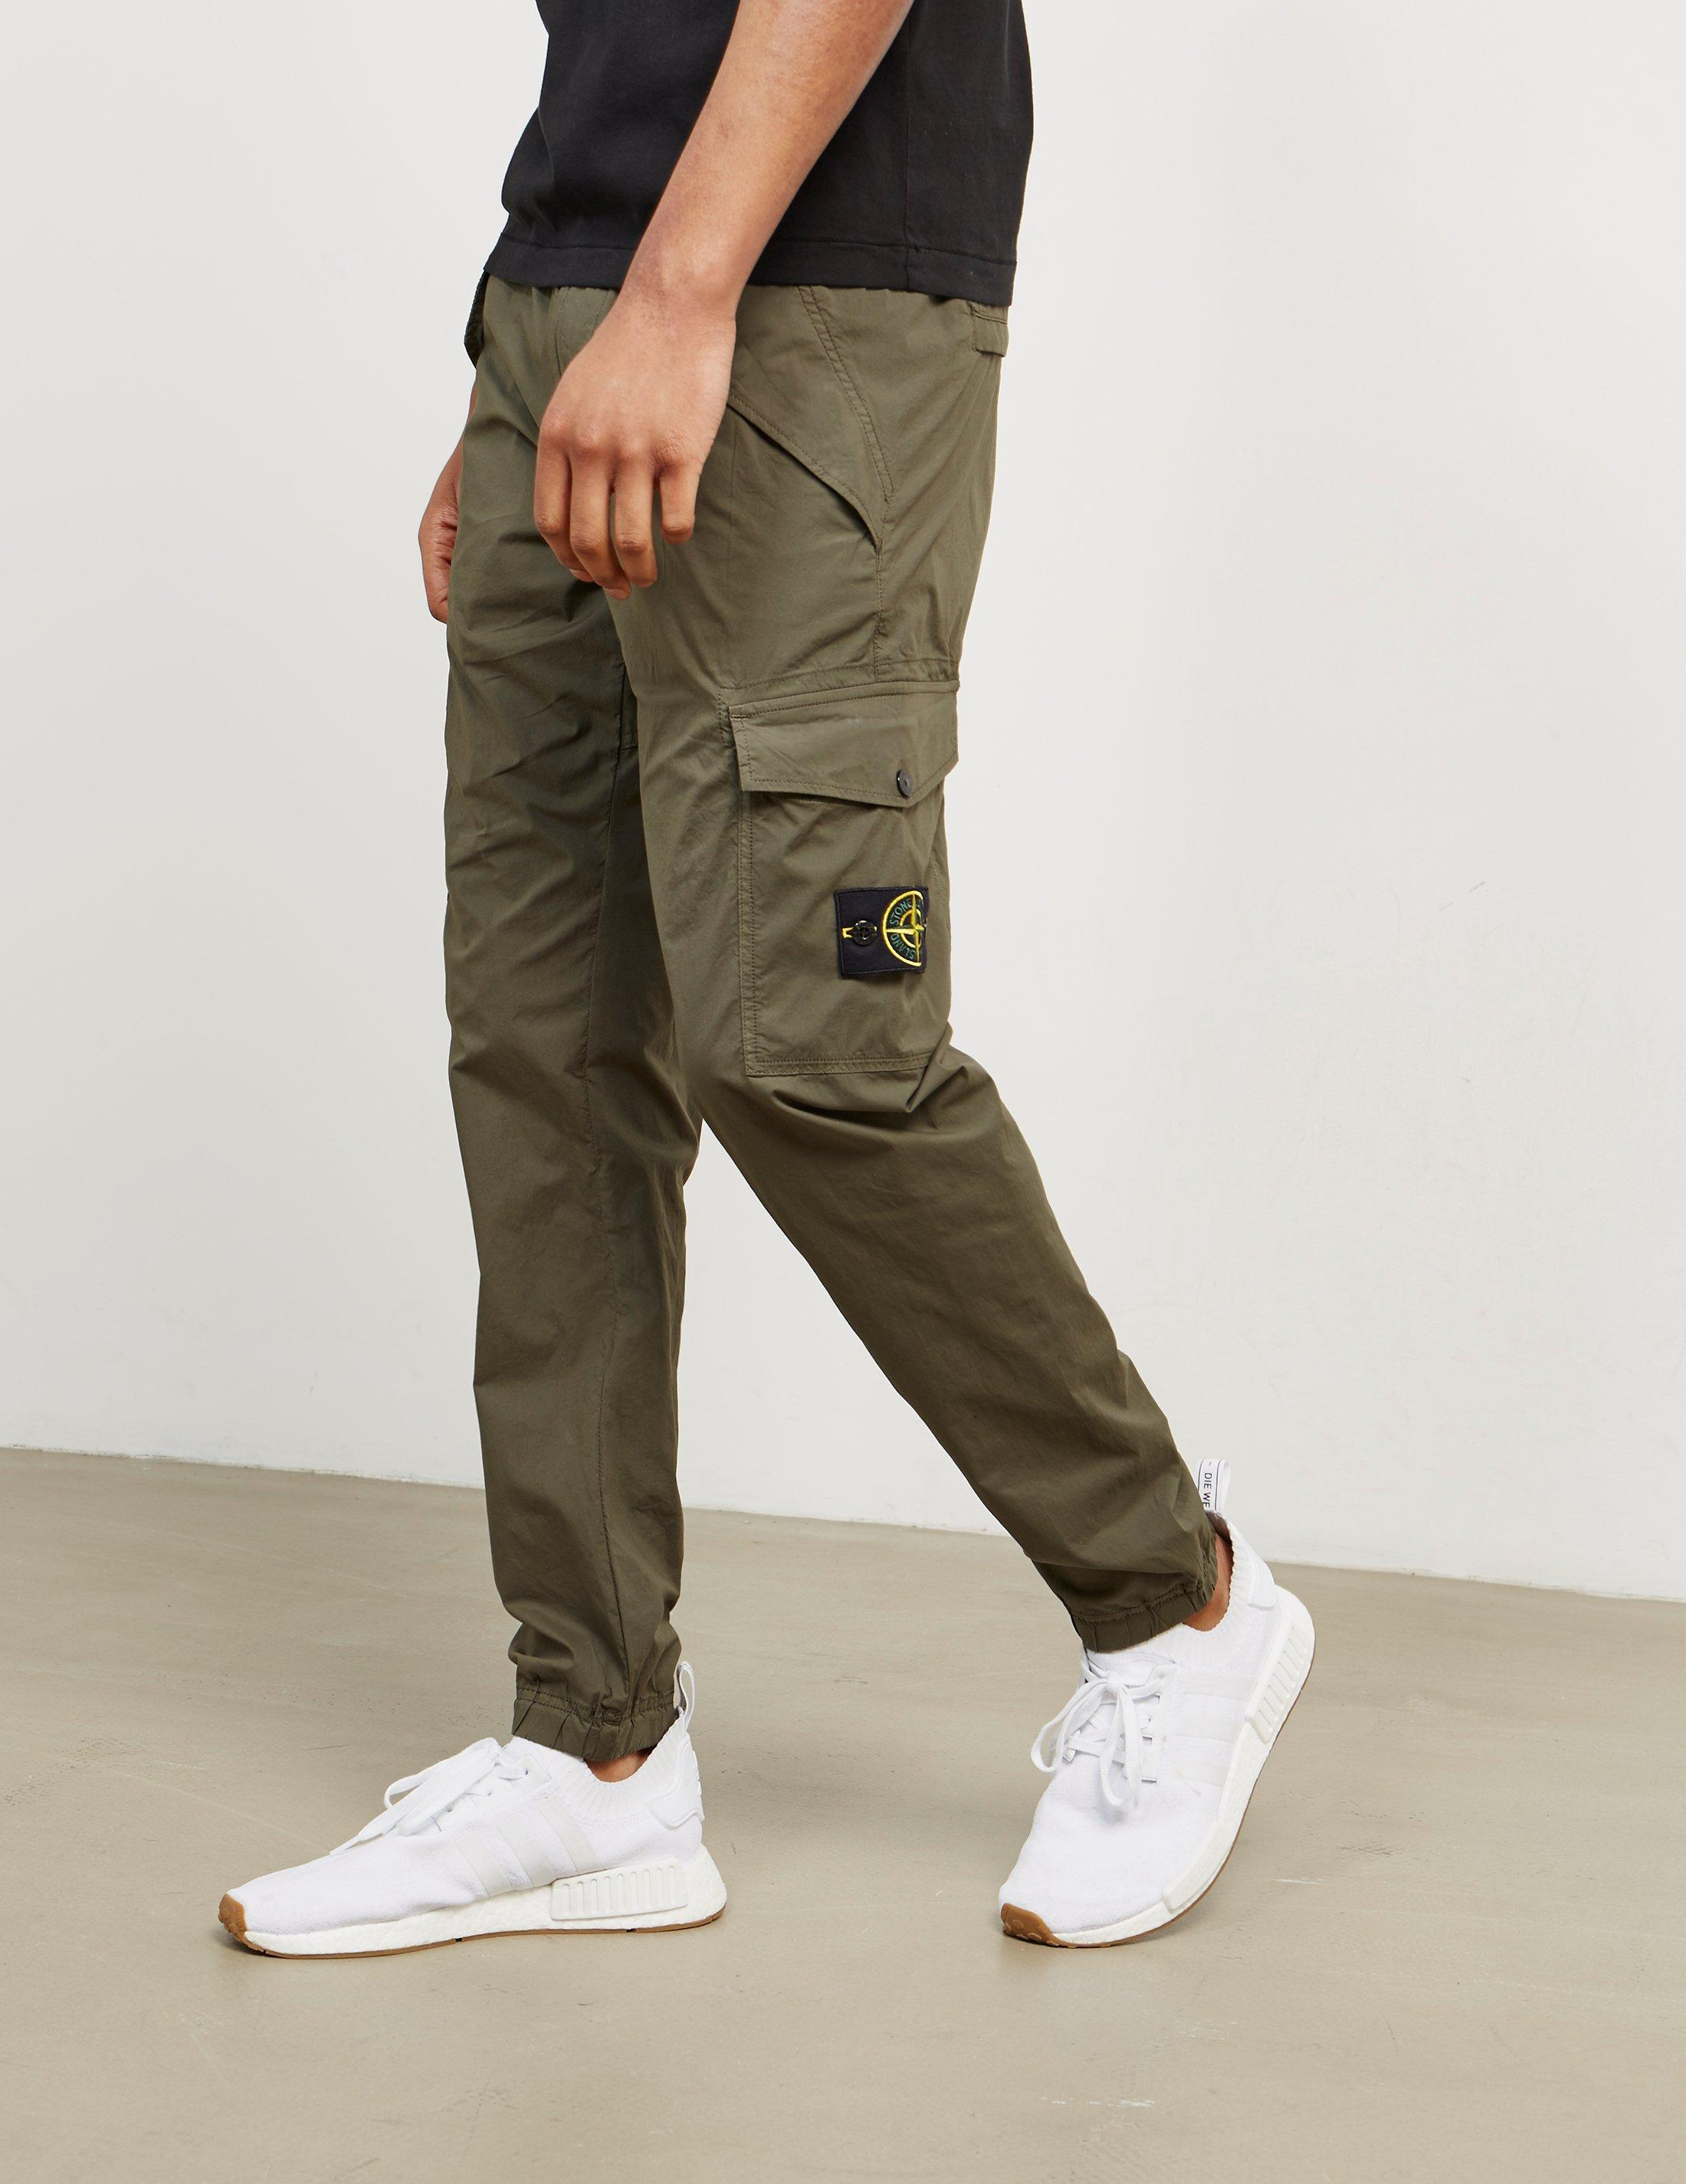 Stone Island Cotton Mens Cargo Pants Green for Men - Lyst